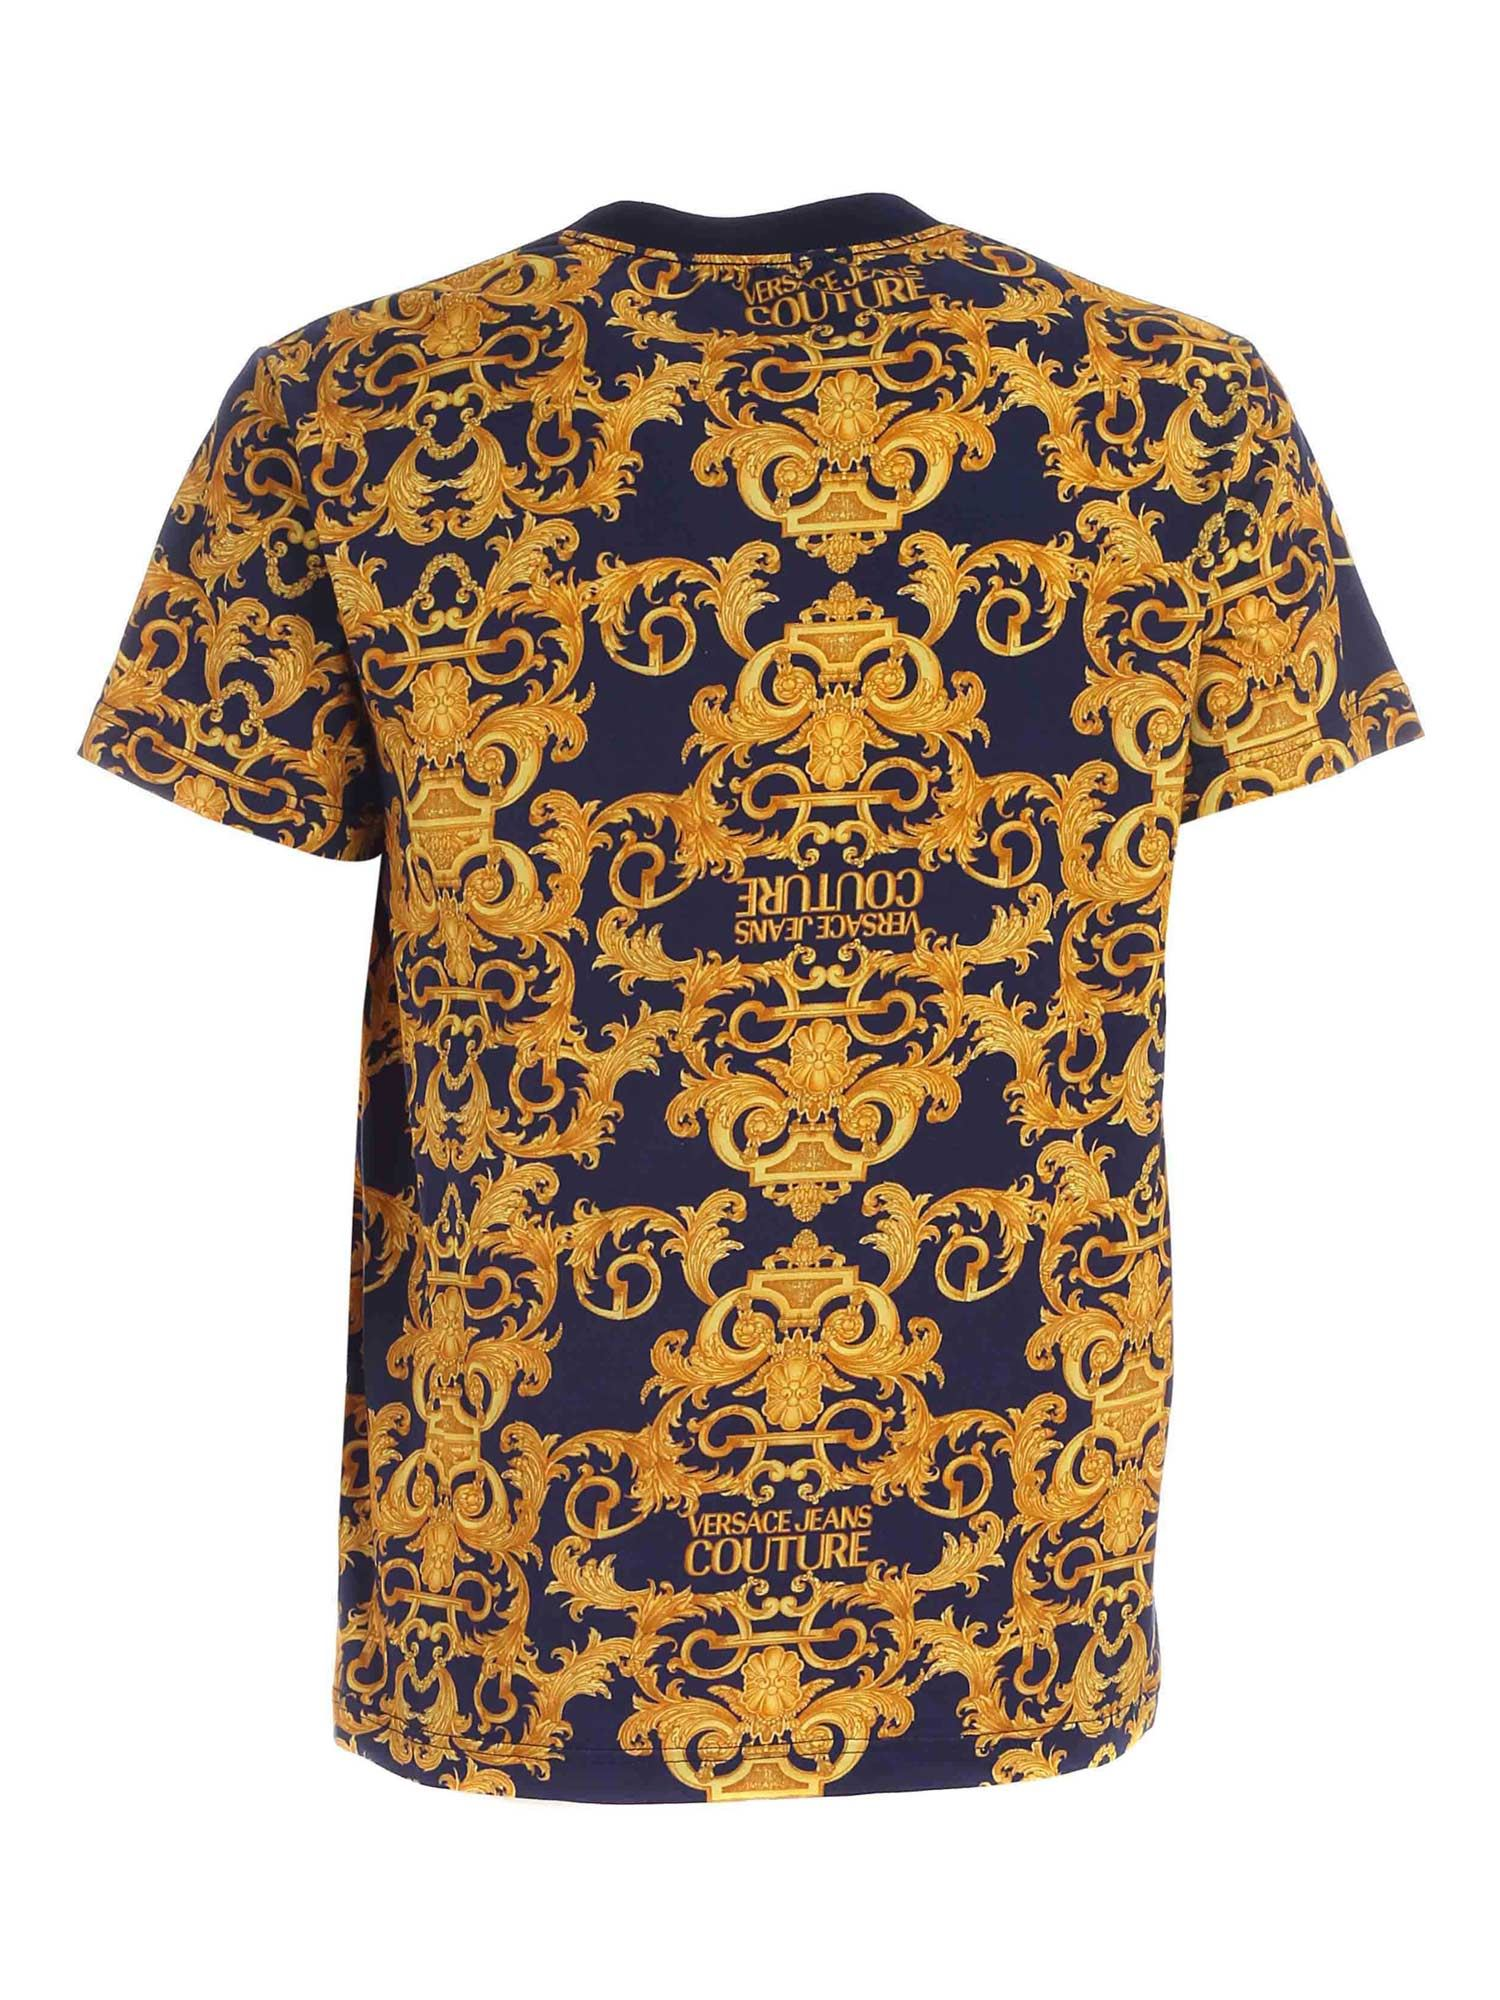 VERSACE JEANS COUTURE Cottons LOGO BAROQUE PRINT T-SHIRT IN BLUE